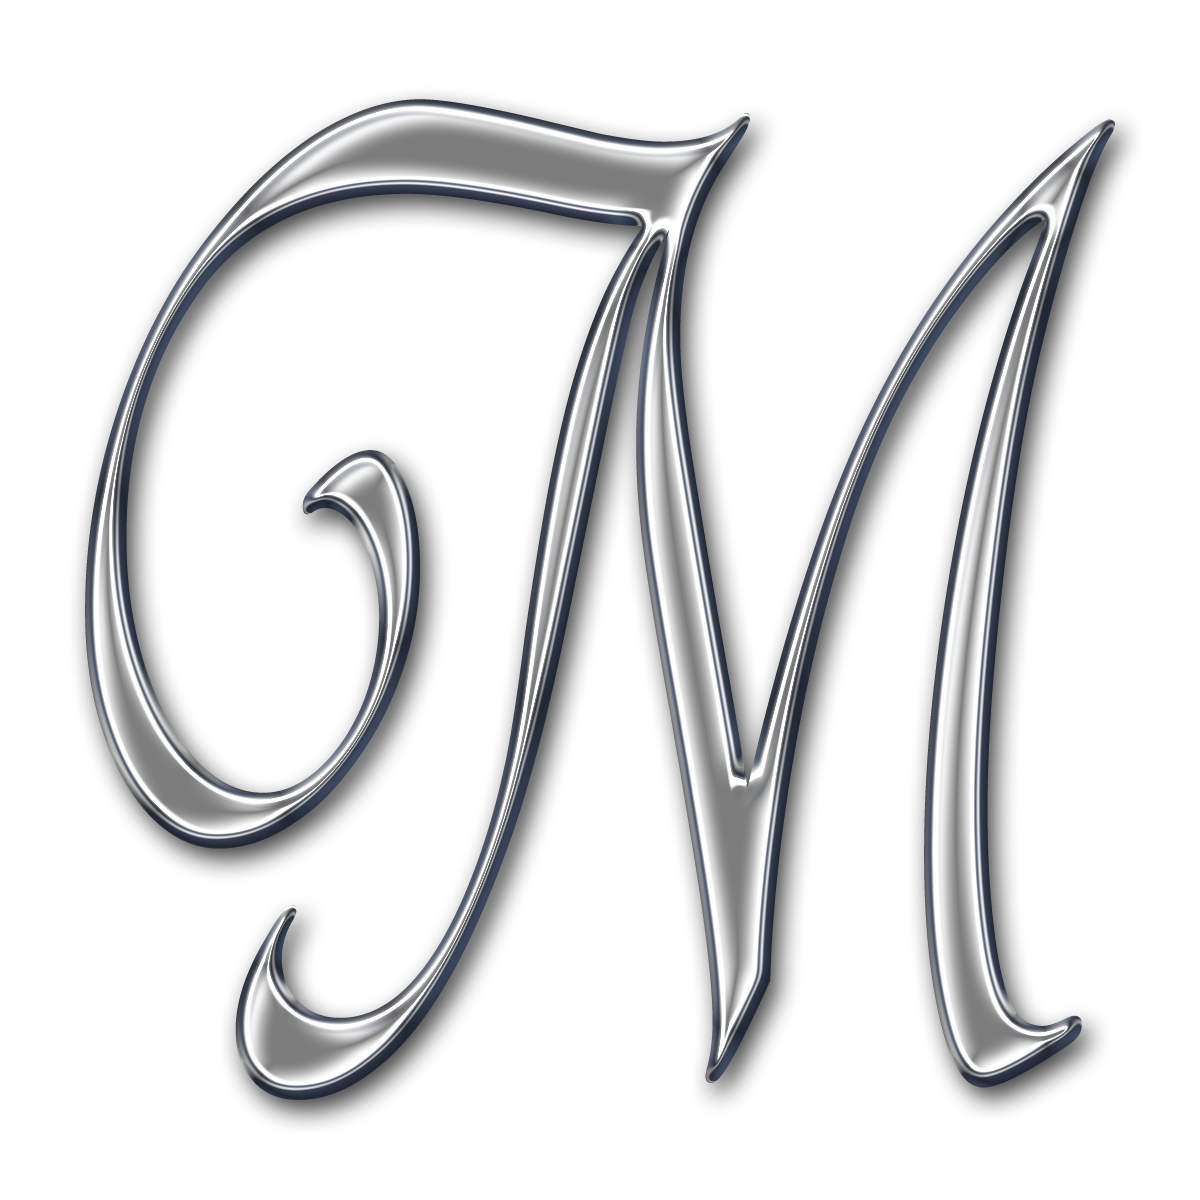 Free Wallpaper Of Letter M – wallpaper202